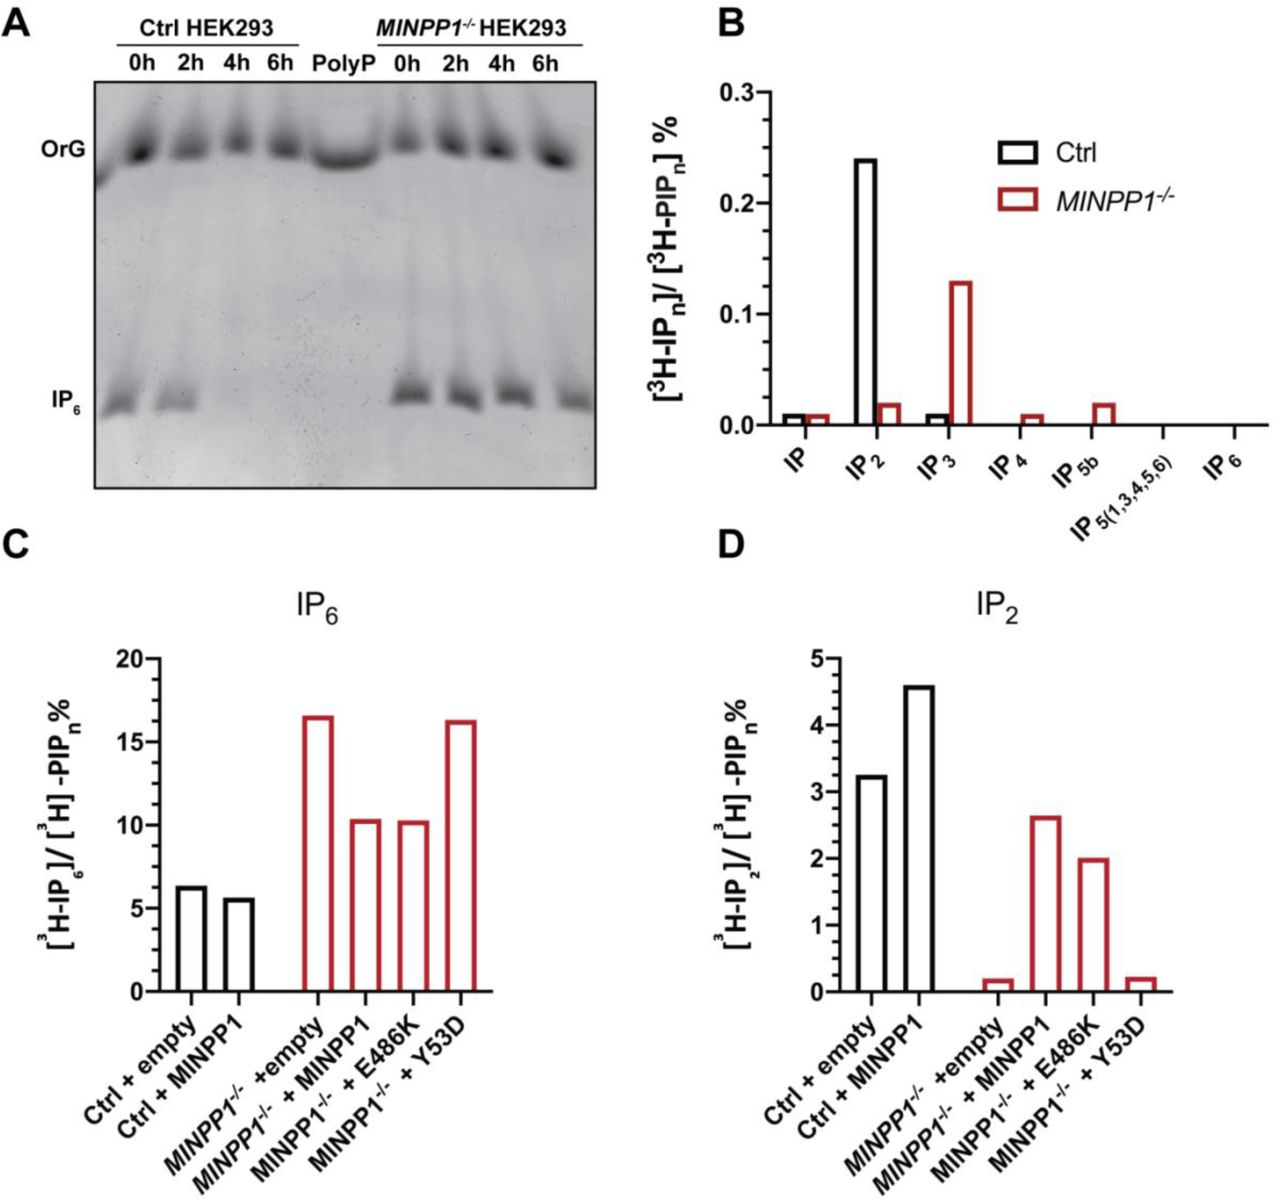 Phytase activity and SAX-HPLC analysis of extracellular and intracellular inositol phosphate levels. ( A )MINPP1 phytase activity in conditioned medium of MINPP1 -/- HEK293 cells upon addition of 4 nmol of IP 6 and incubation at 37°C for the time period indicated above. The samples were then mixed with Orange G (OrG) loading dye and resolved by PAGE followed by toluidine blue staining. Gel image representative of two independent experiments. Polyphosphate (PolyP) is shown as size ladder. ( B ) SAX-HPLC analysis of inositol phosphate levels in cell culture media of [ 3 H]-inositol labeled control and MINPP1 -/- HEK293 cells. (C-D) SAX-HPLC analysis of IP 2 and IP 6 levels in control and MINPP1 -/- HEK293 cells transiently transfected with plasmids encoding empty vector, wildtype, Y53D or E486K variant MINPP1. The data is representative of two independent experiments. [ 3 H]-IP n levels are presented as percentage of total radioactivity in the inositol-lipid fraction ([ 3 H]-PIP n ). Abbreviations used: IPn, inositol phosphates; PIPn, phosphatidyl inositol phosphates.